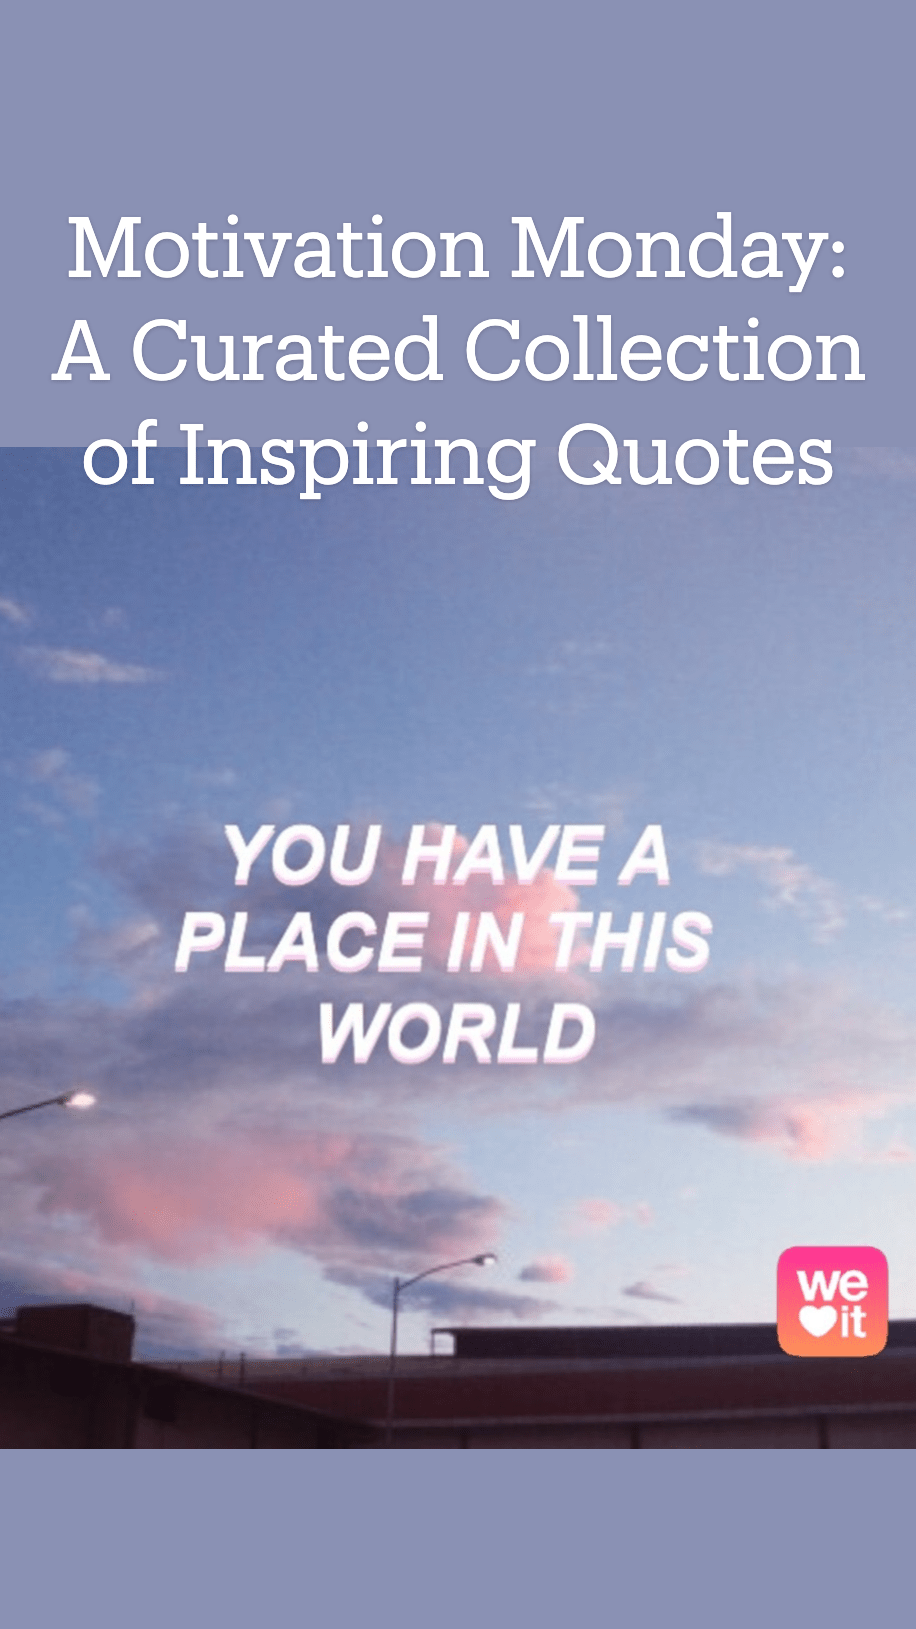 You are currently viewing Motivation Monday: A Curated Collection of Inspiring Quotes